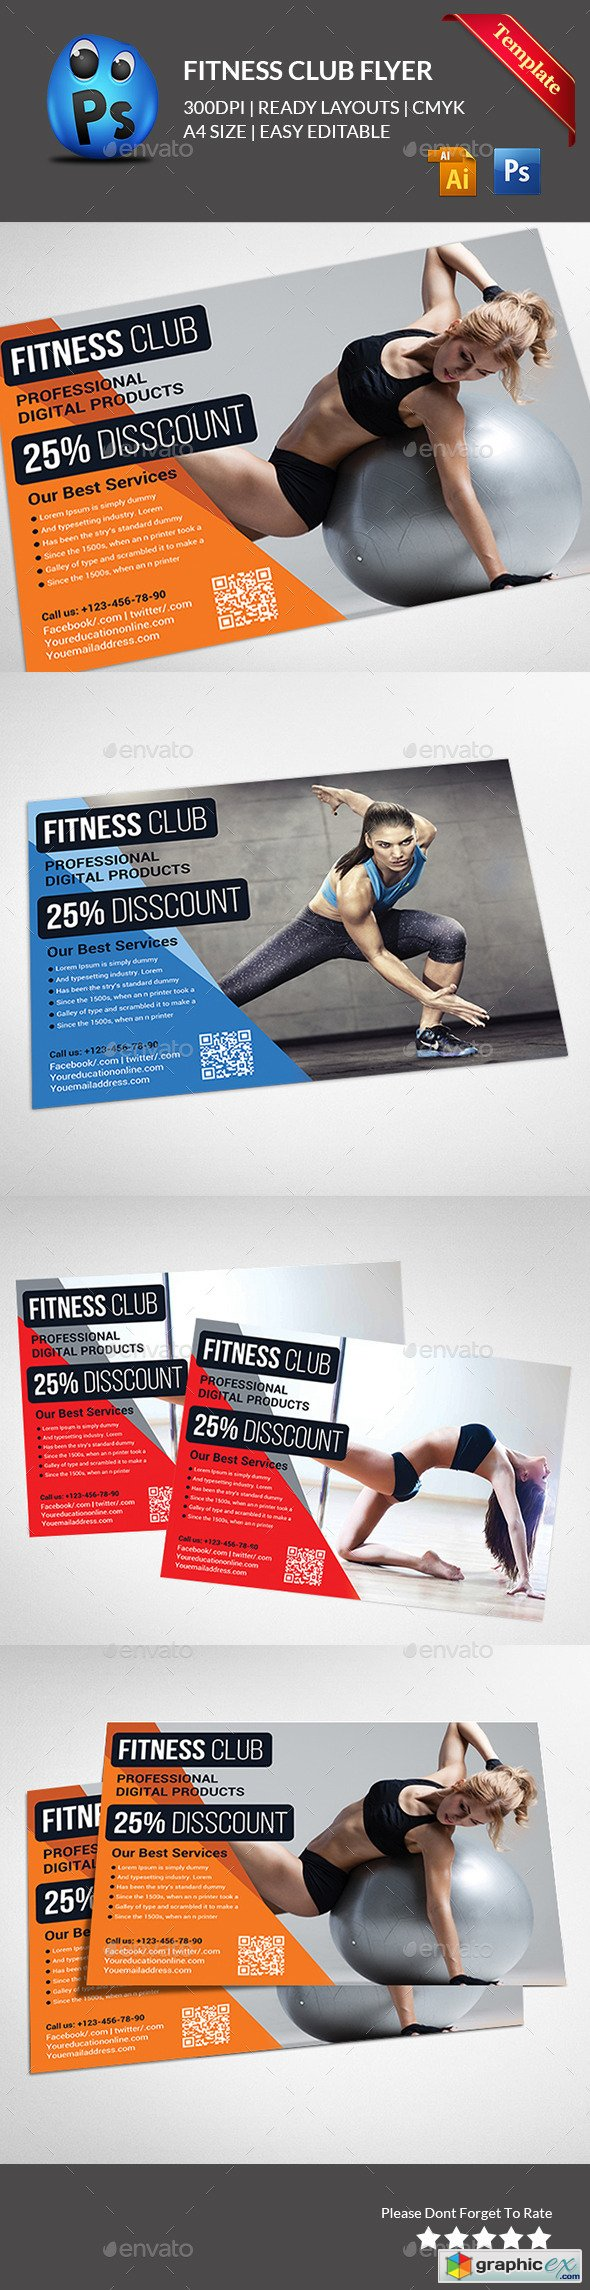 Fitness Flyer - Gym Flyer 11615086